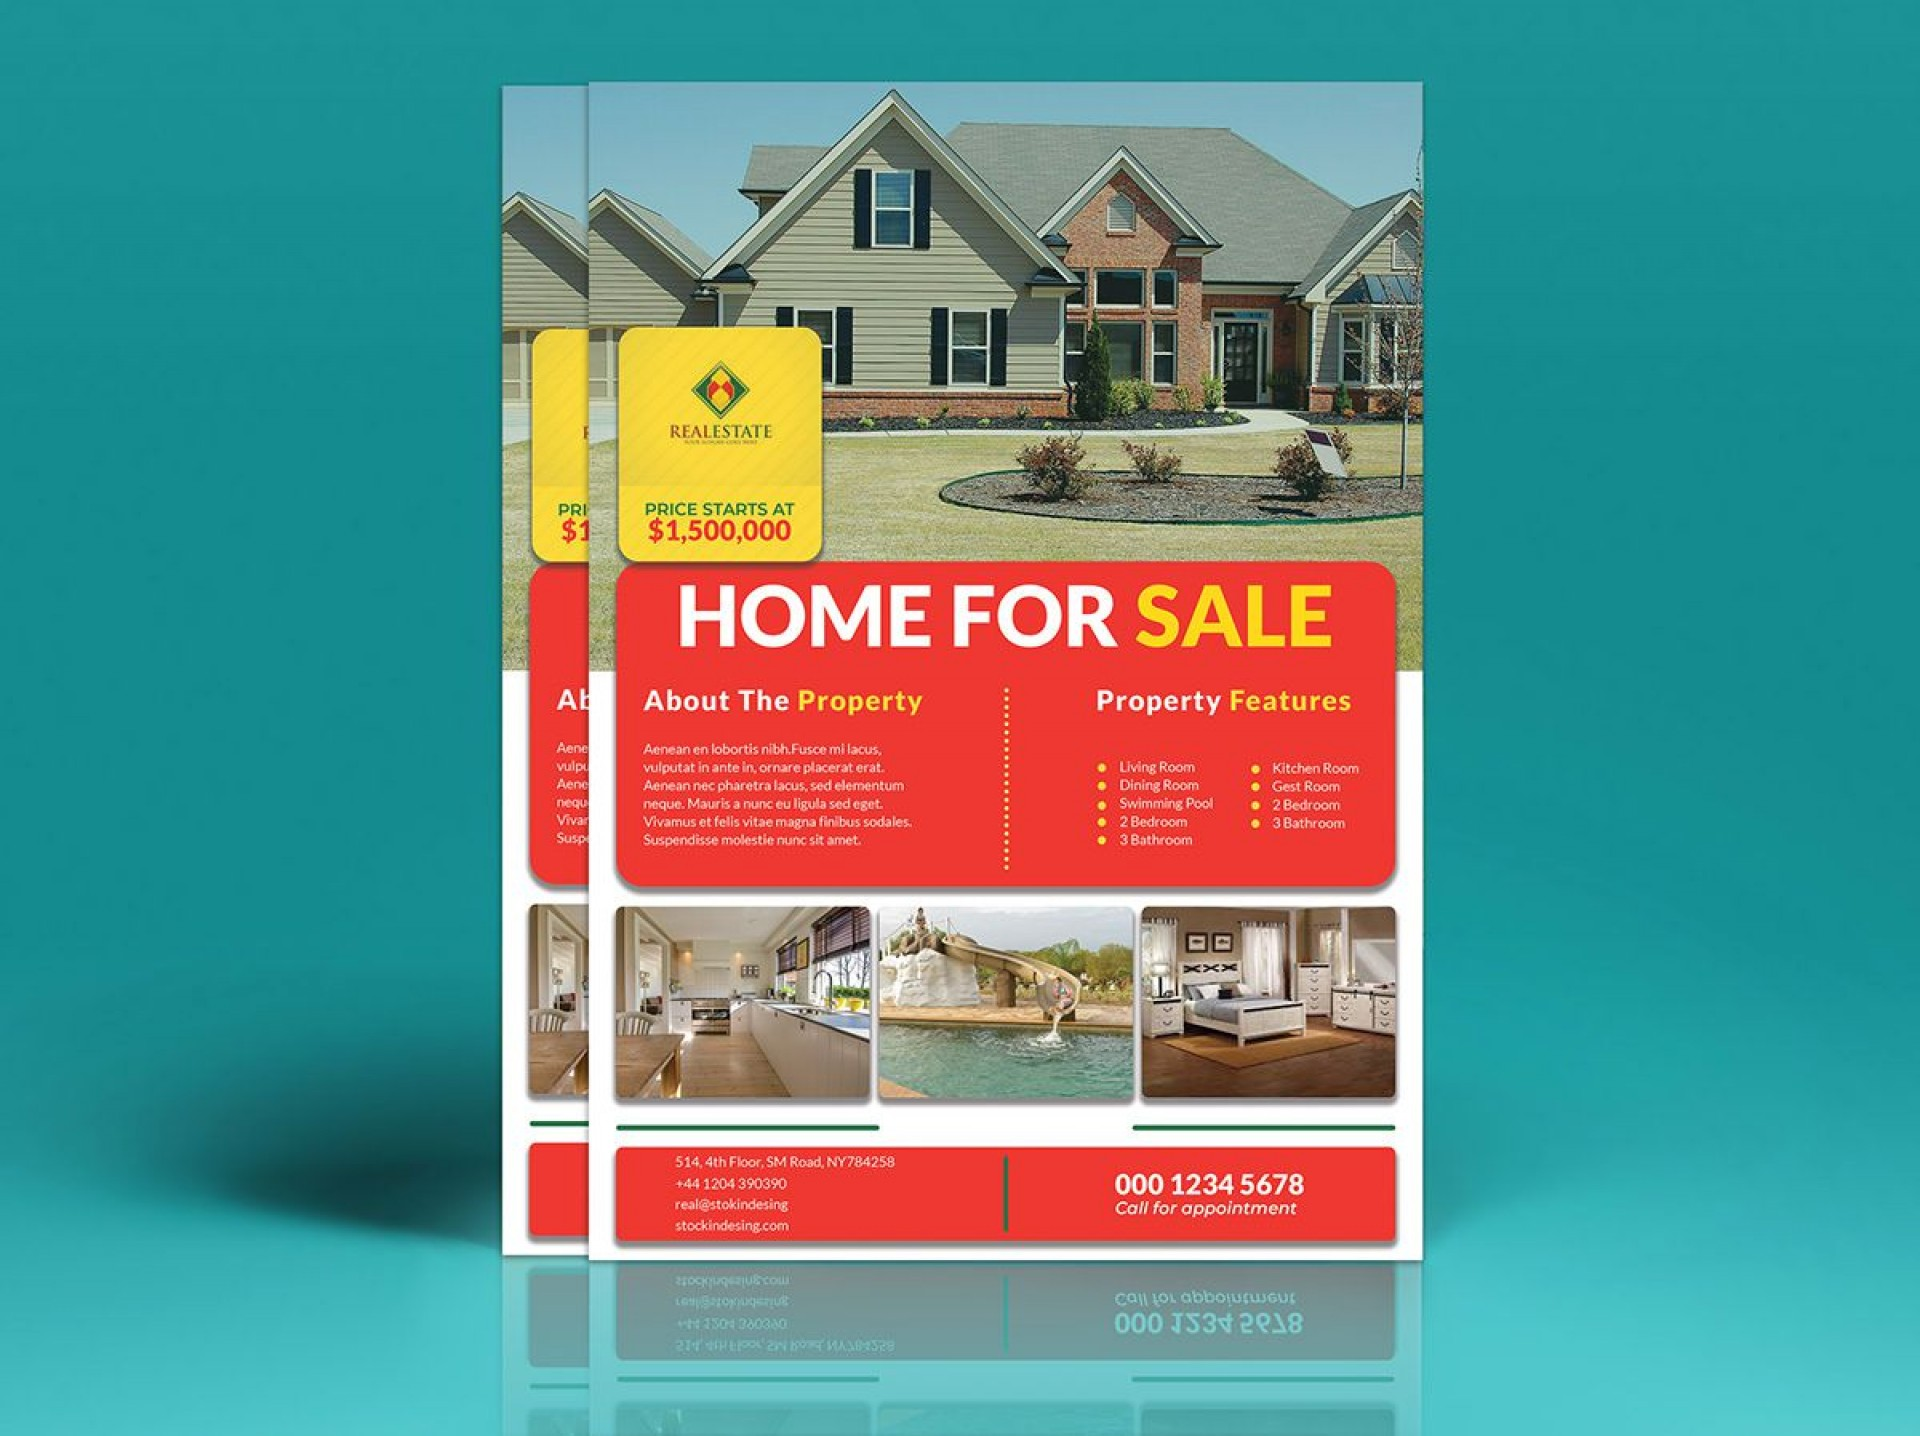 002 Fantastic House For Sale Flyer Template Highest Clarity  Free Real Estate Example By Owner1920